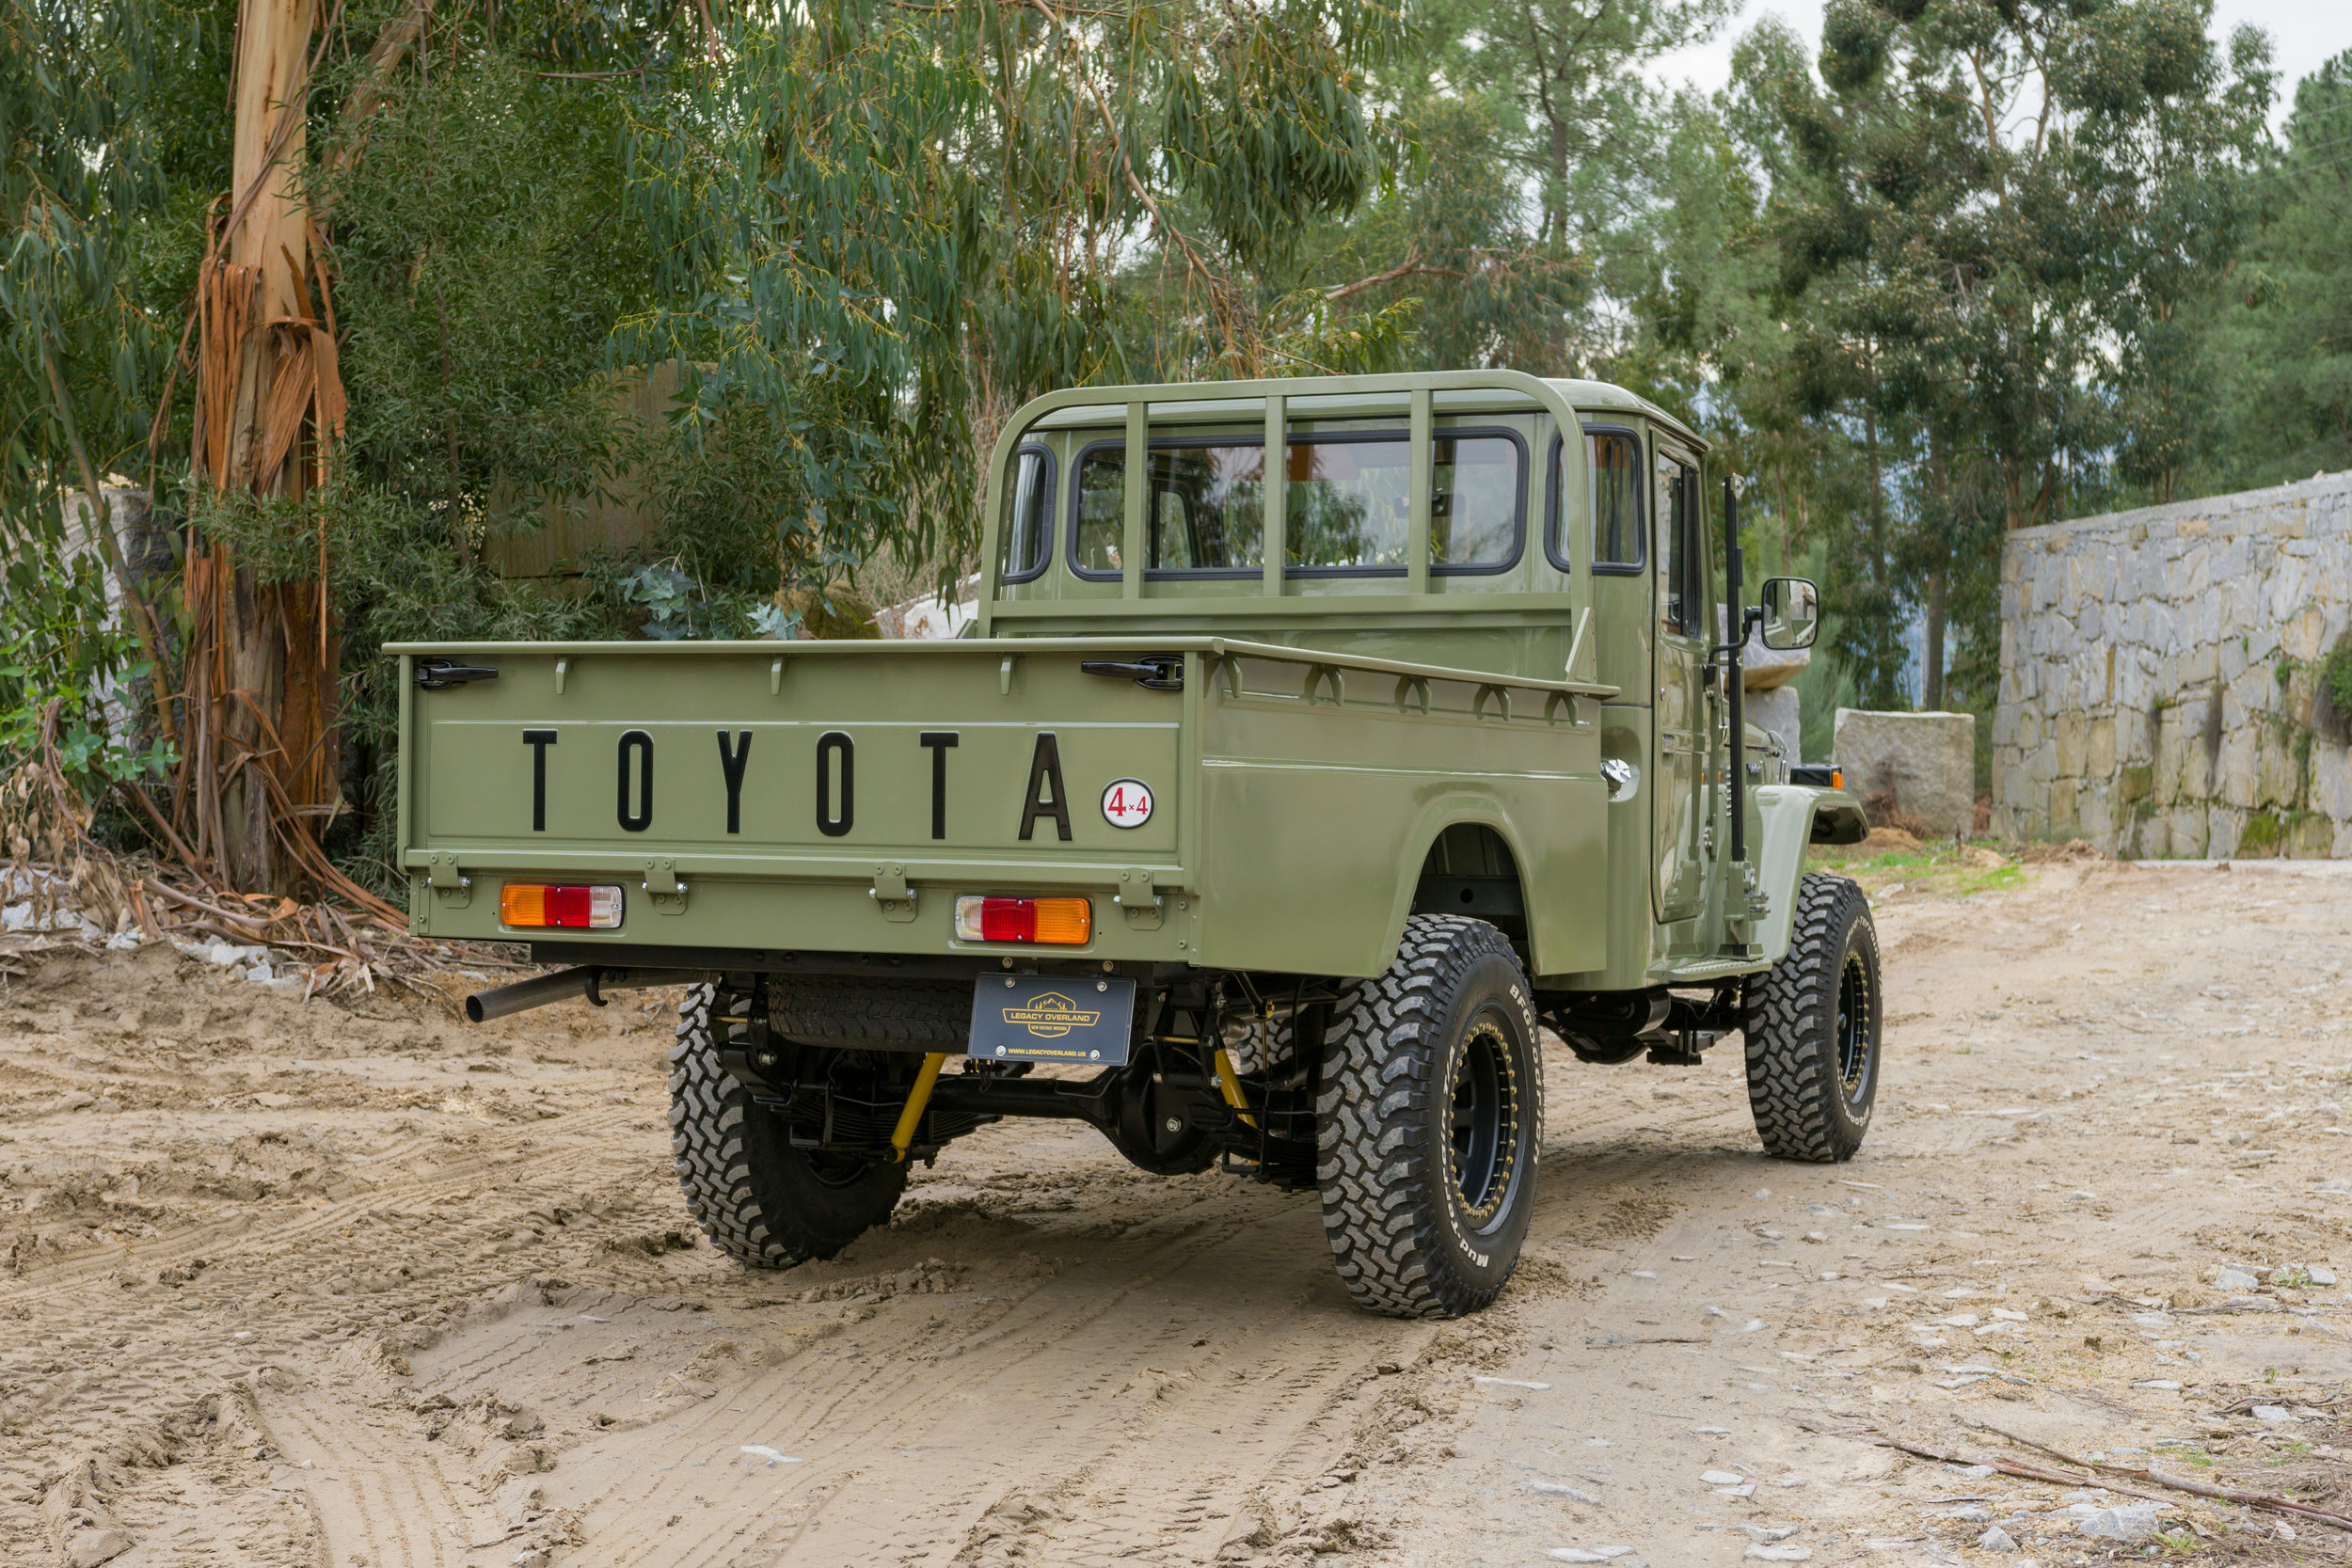 LegacyOverland_1978_ToyotaLandCruiser_HJ45_pick-up_quarry_7.jpg